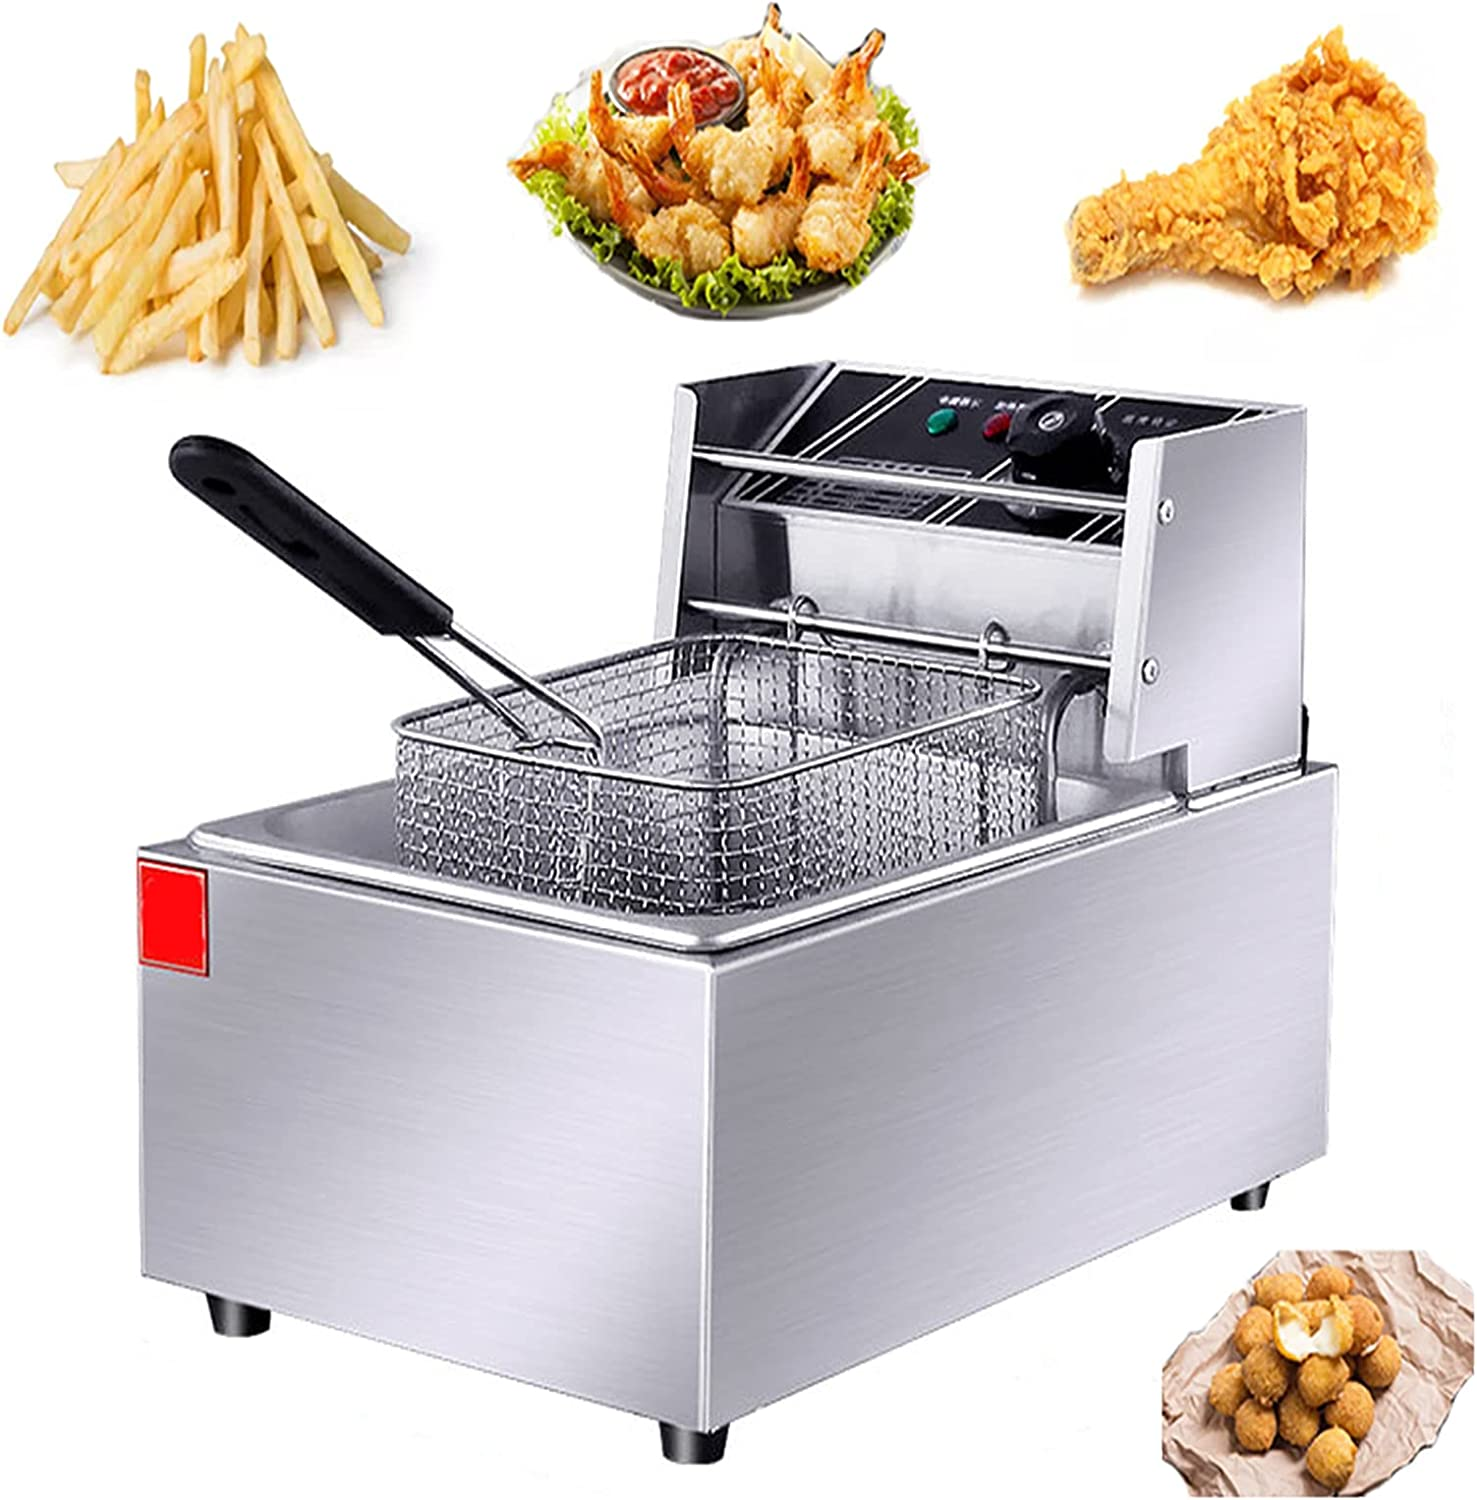 NEWTRY Commercial Deep Fryer 6L Single-Cylinder 2500W Countertop Deep FryerStainless Steel Professional Commercial Frying Machine for French Fries Fish Restaurant Home Kitchen